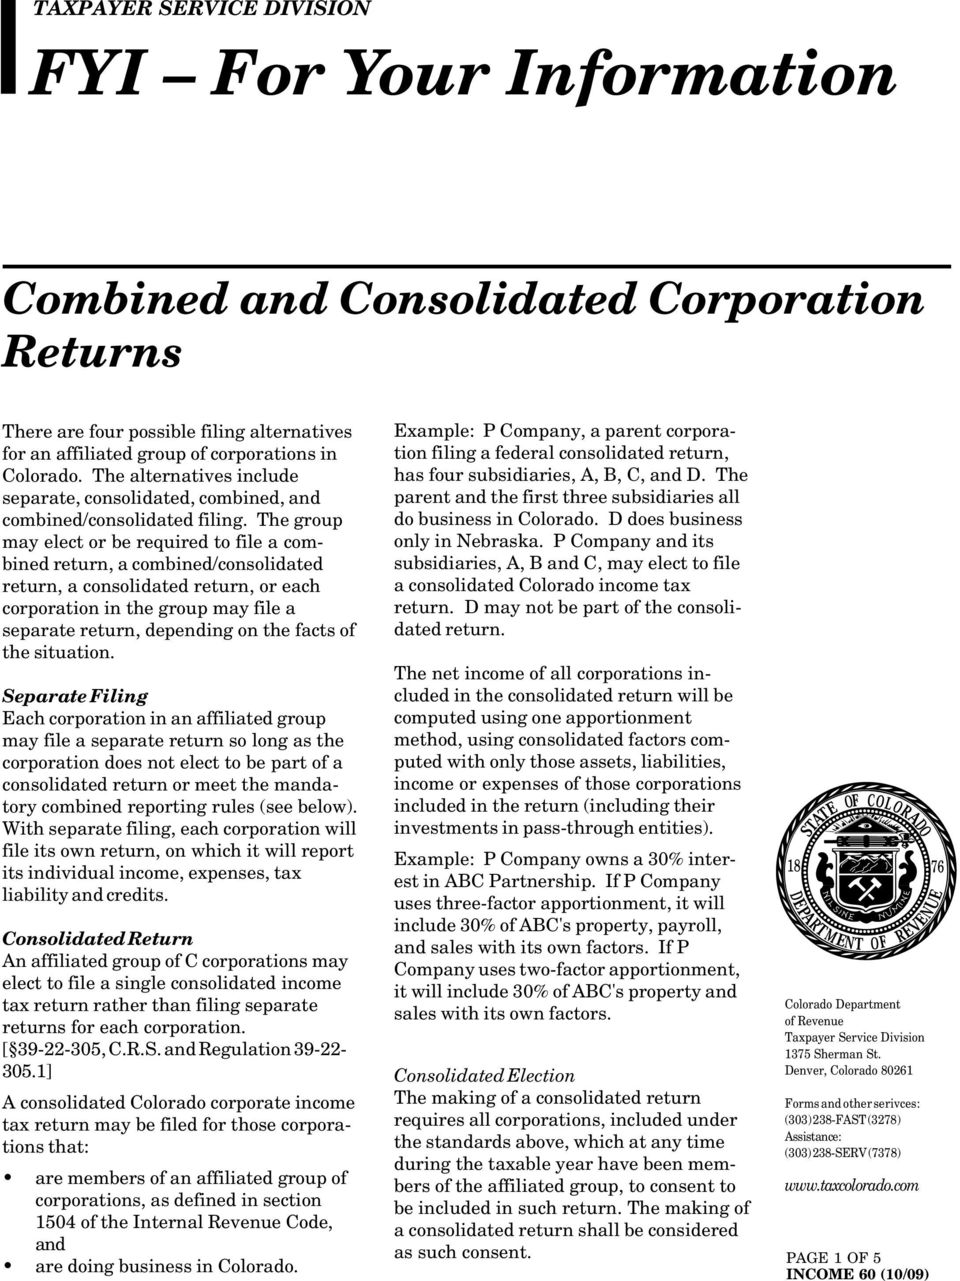 The group may elect or be required to file a combined return, a combined/consolidated return, a consolidated return, or each corporation in the group may file a separate return, depending on the